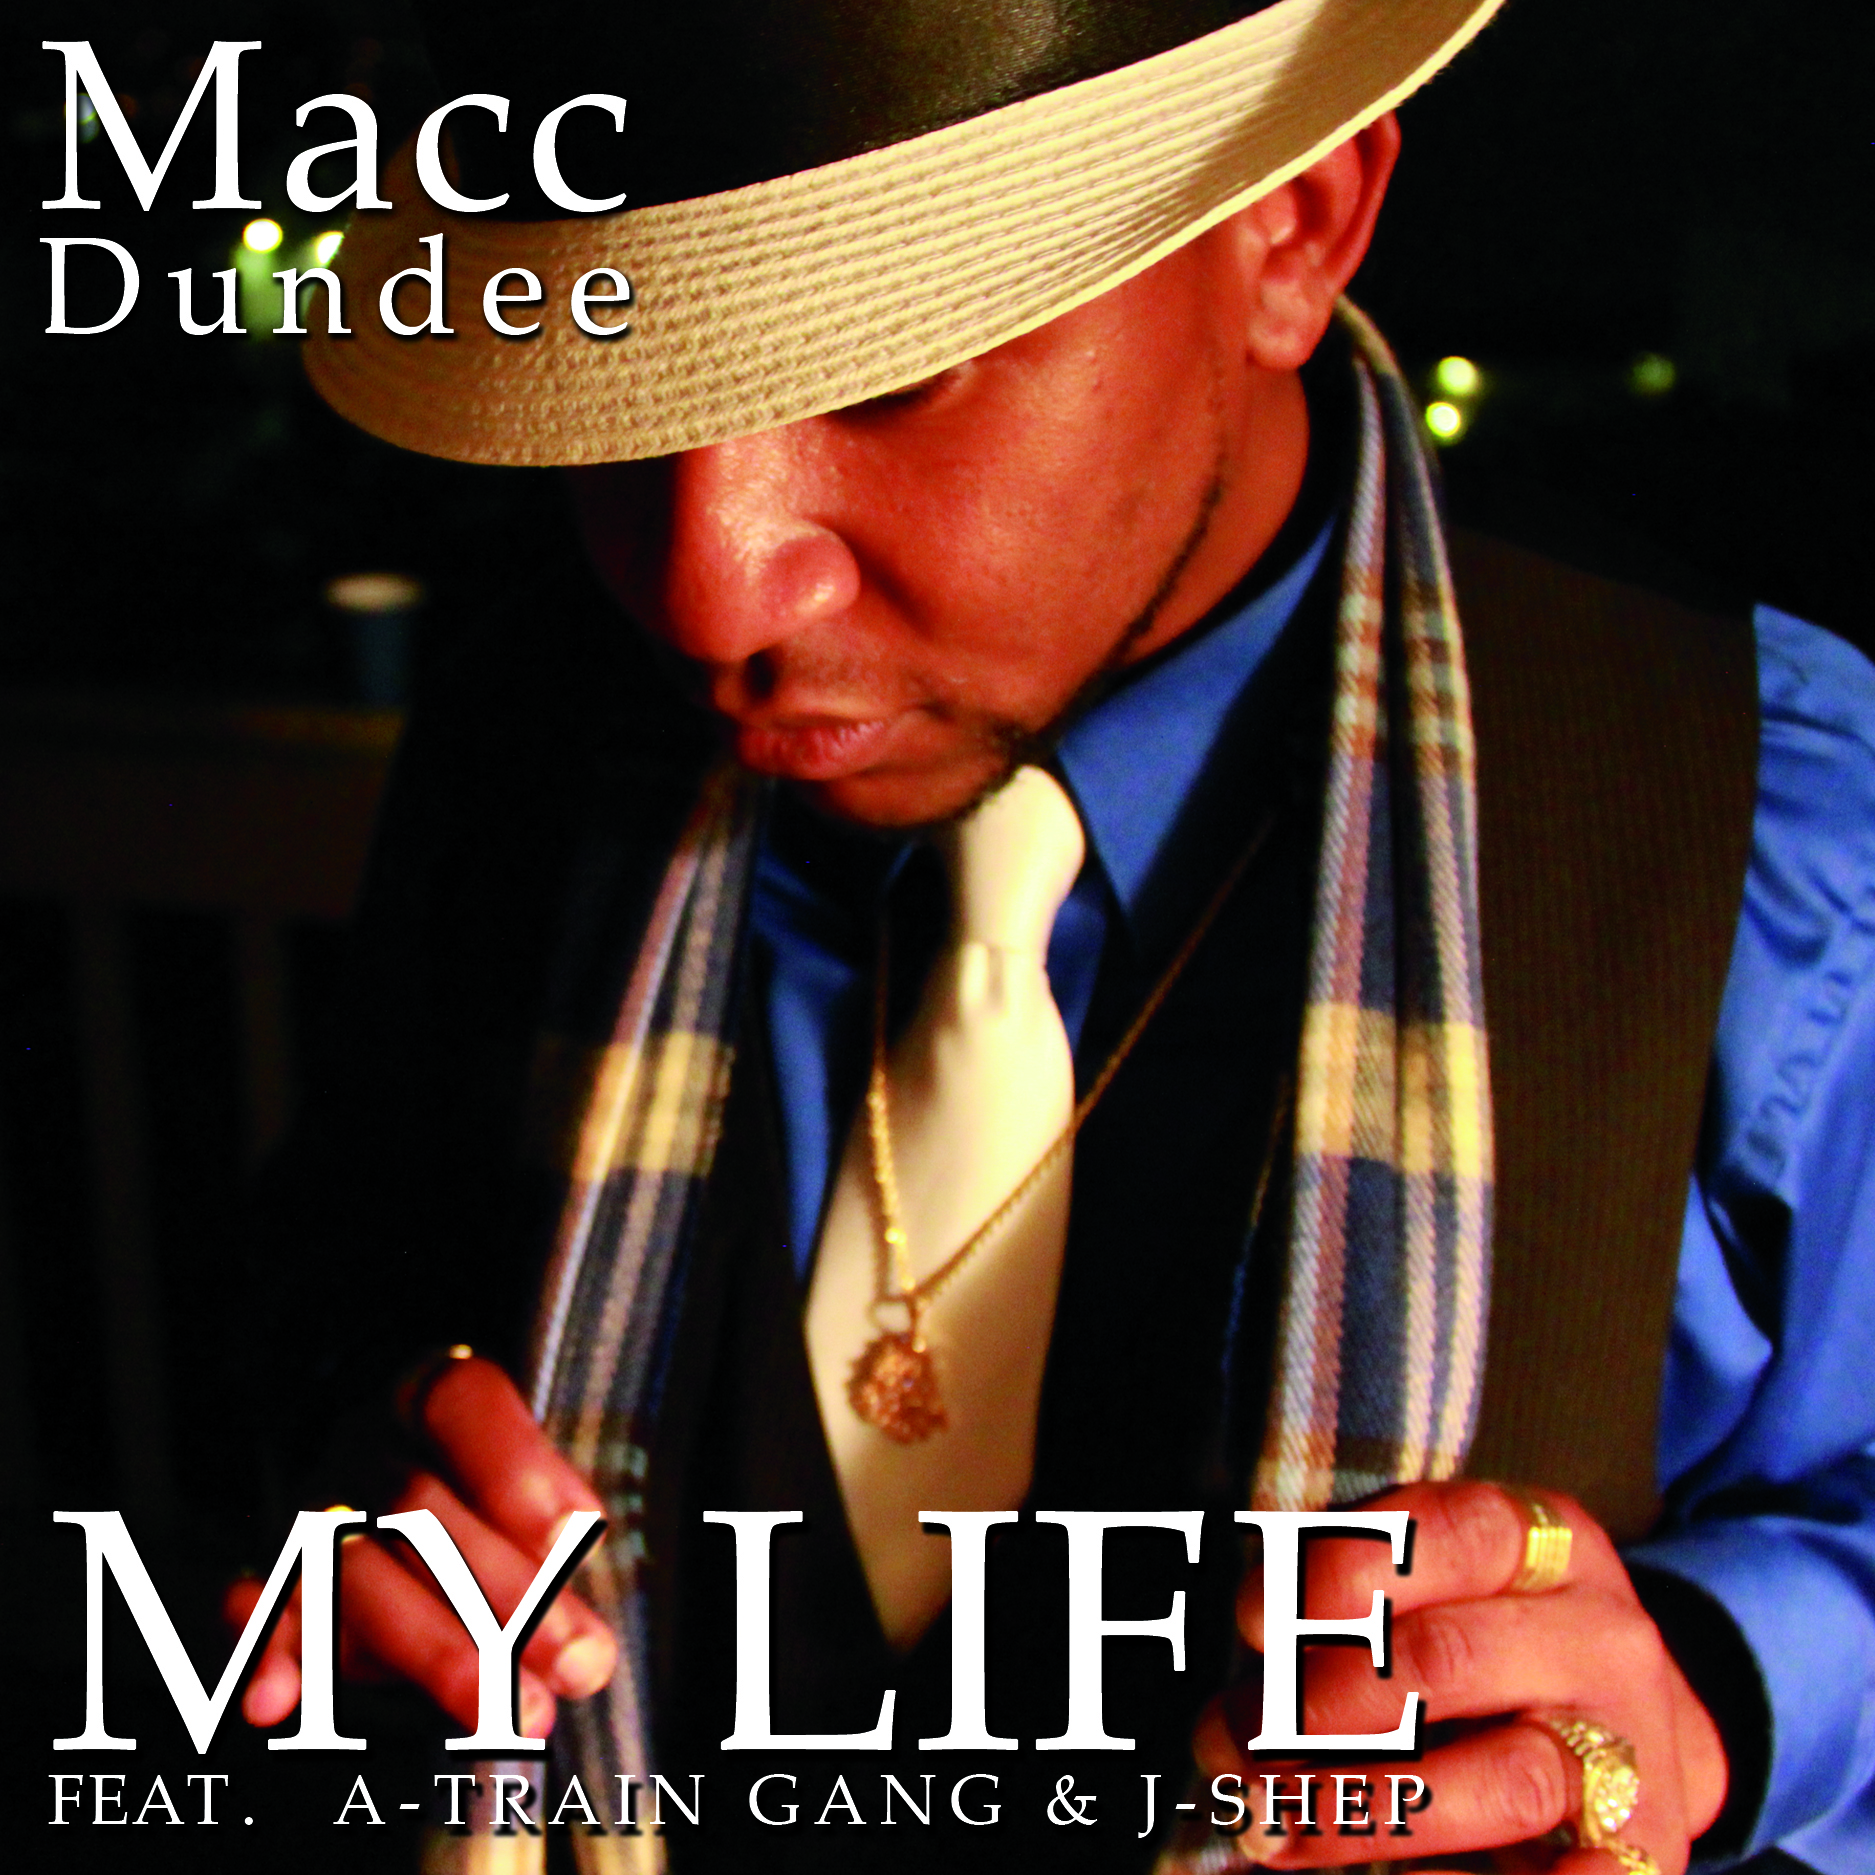 New music from Macc Dundee